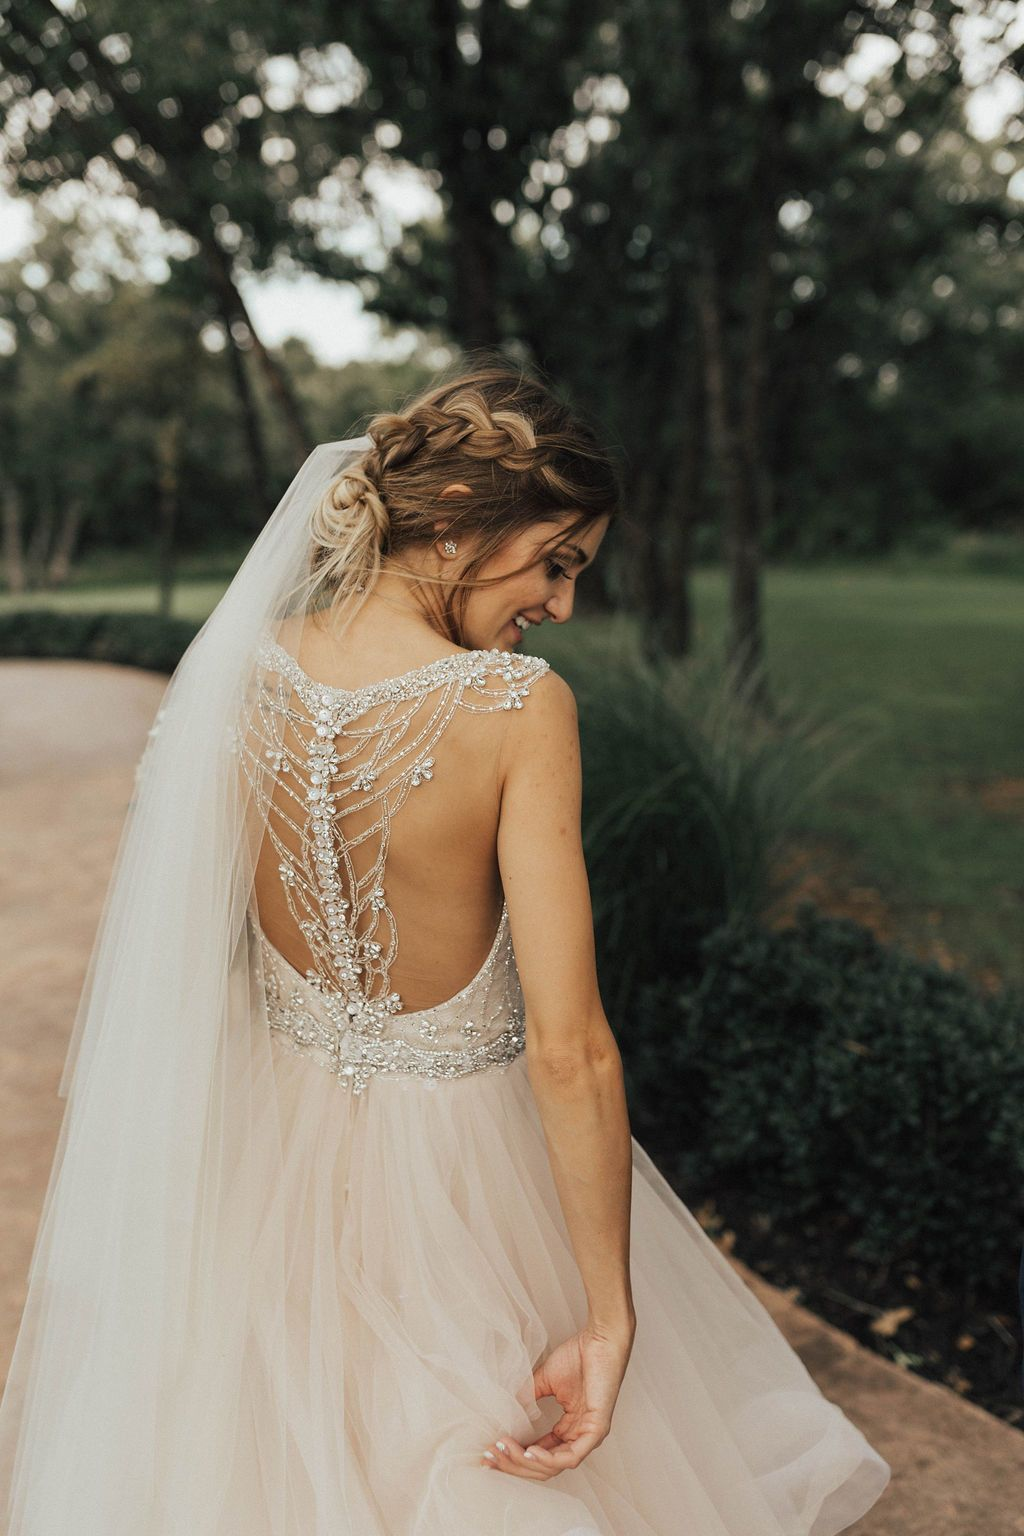 Open Back Wedding Dress 2018 Gown Trends Brides Of Oklahoma Tulle Flowing Bride Bohemian Boho